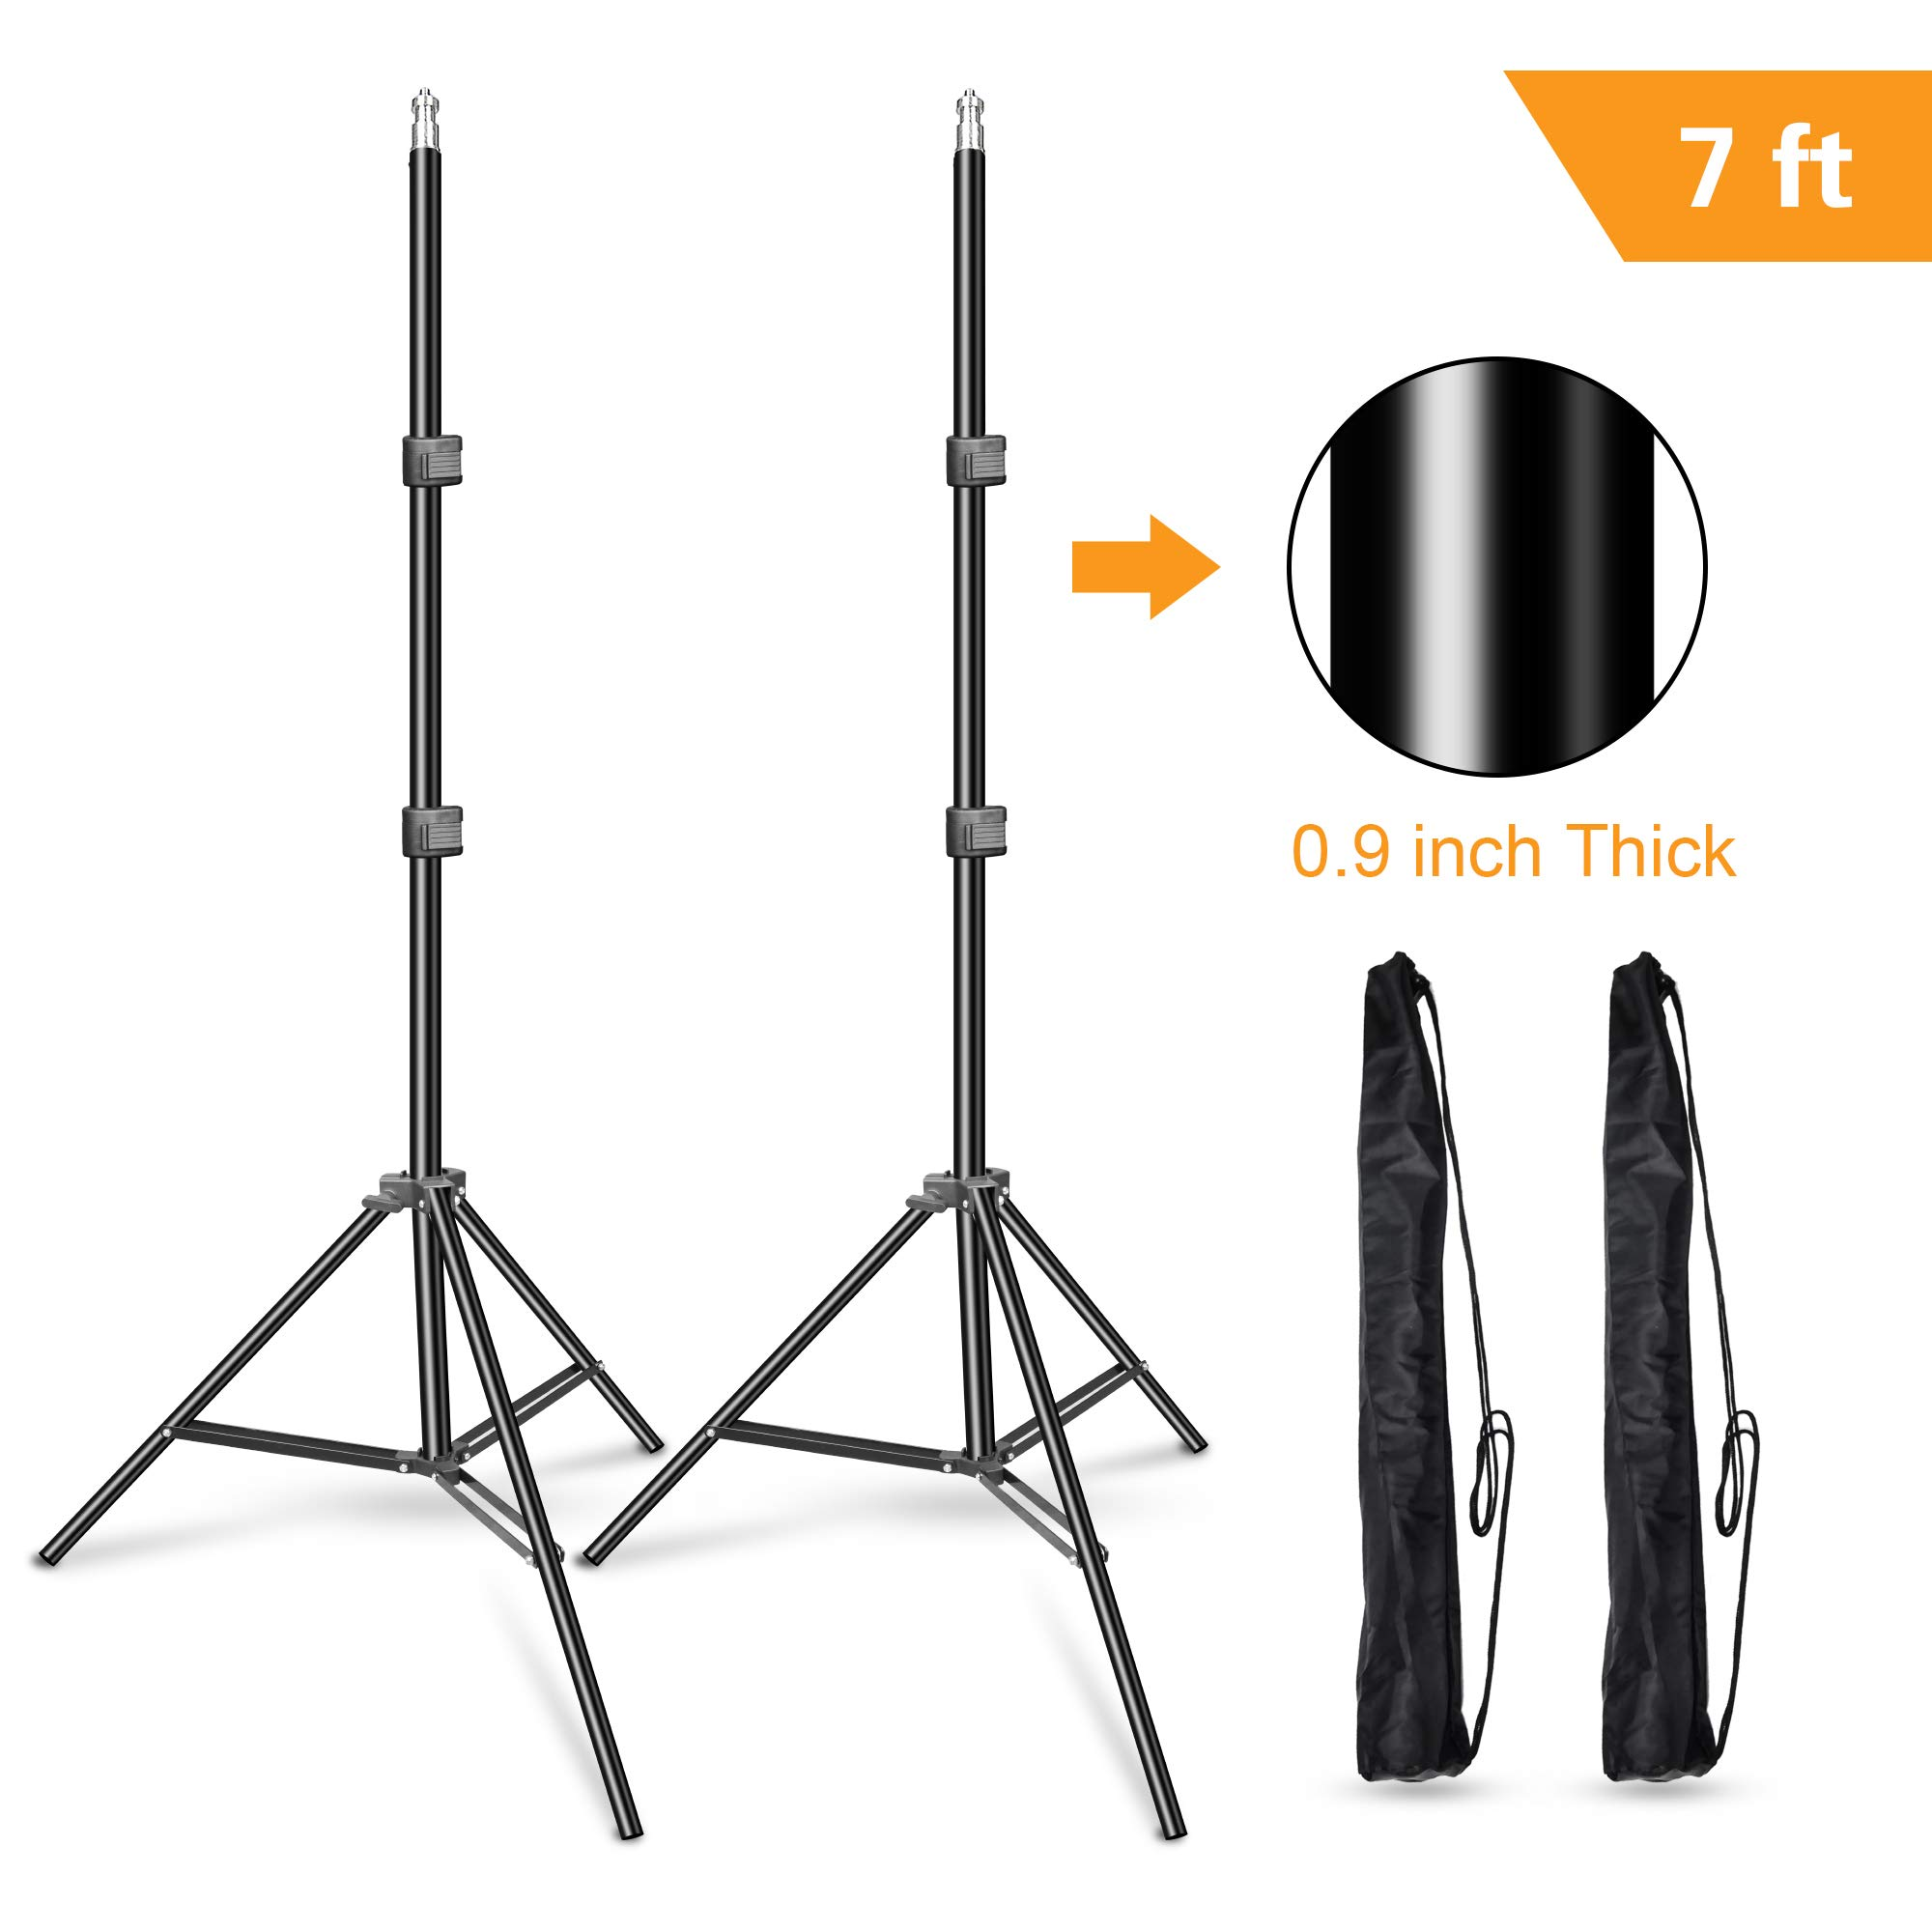 Emart 7 Feet Photography Photo Studio Tripod Light Stands for Softbox, Umbrella, Video Shooting, Reflector, Portable Carry Case Include - 2 Pack by EMART